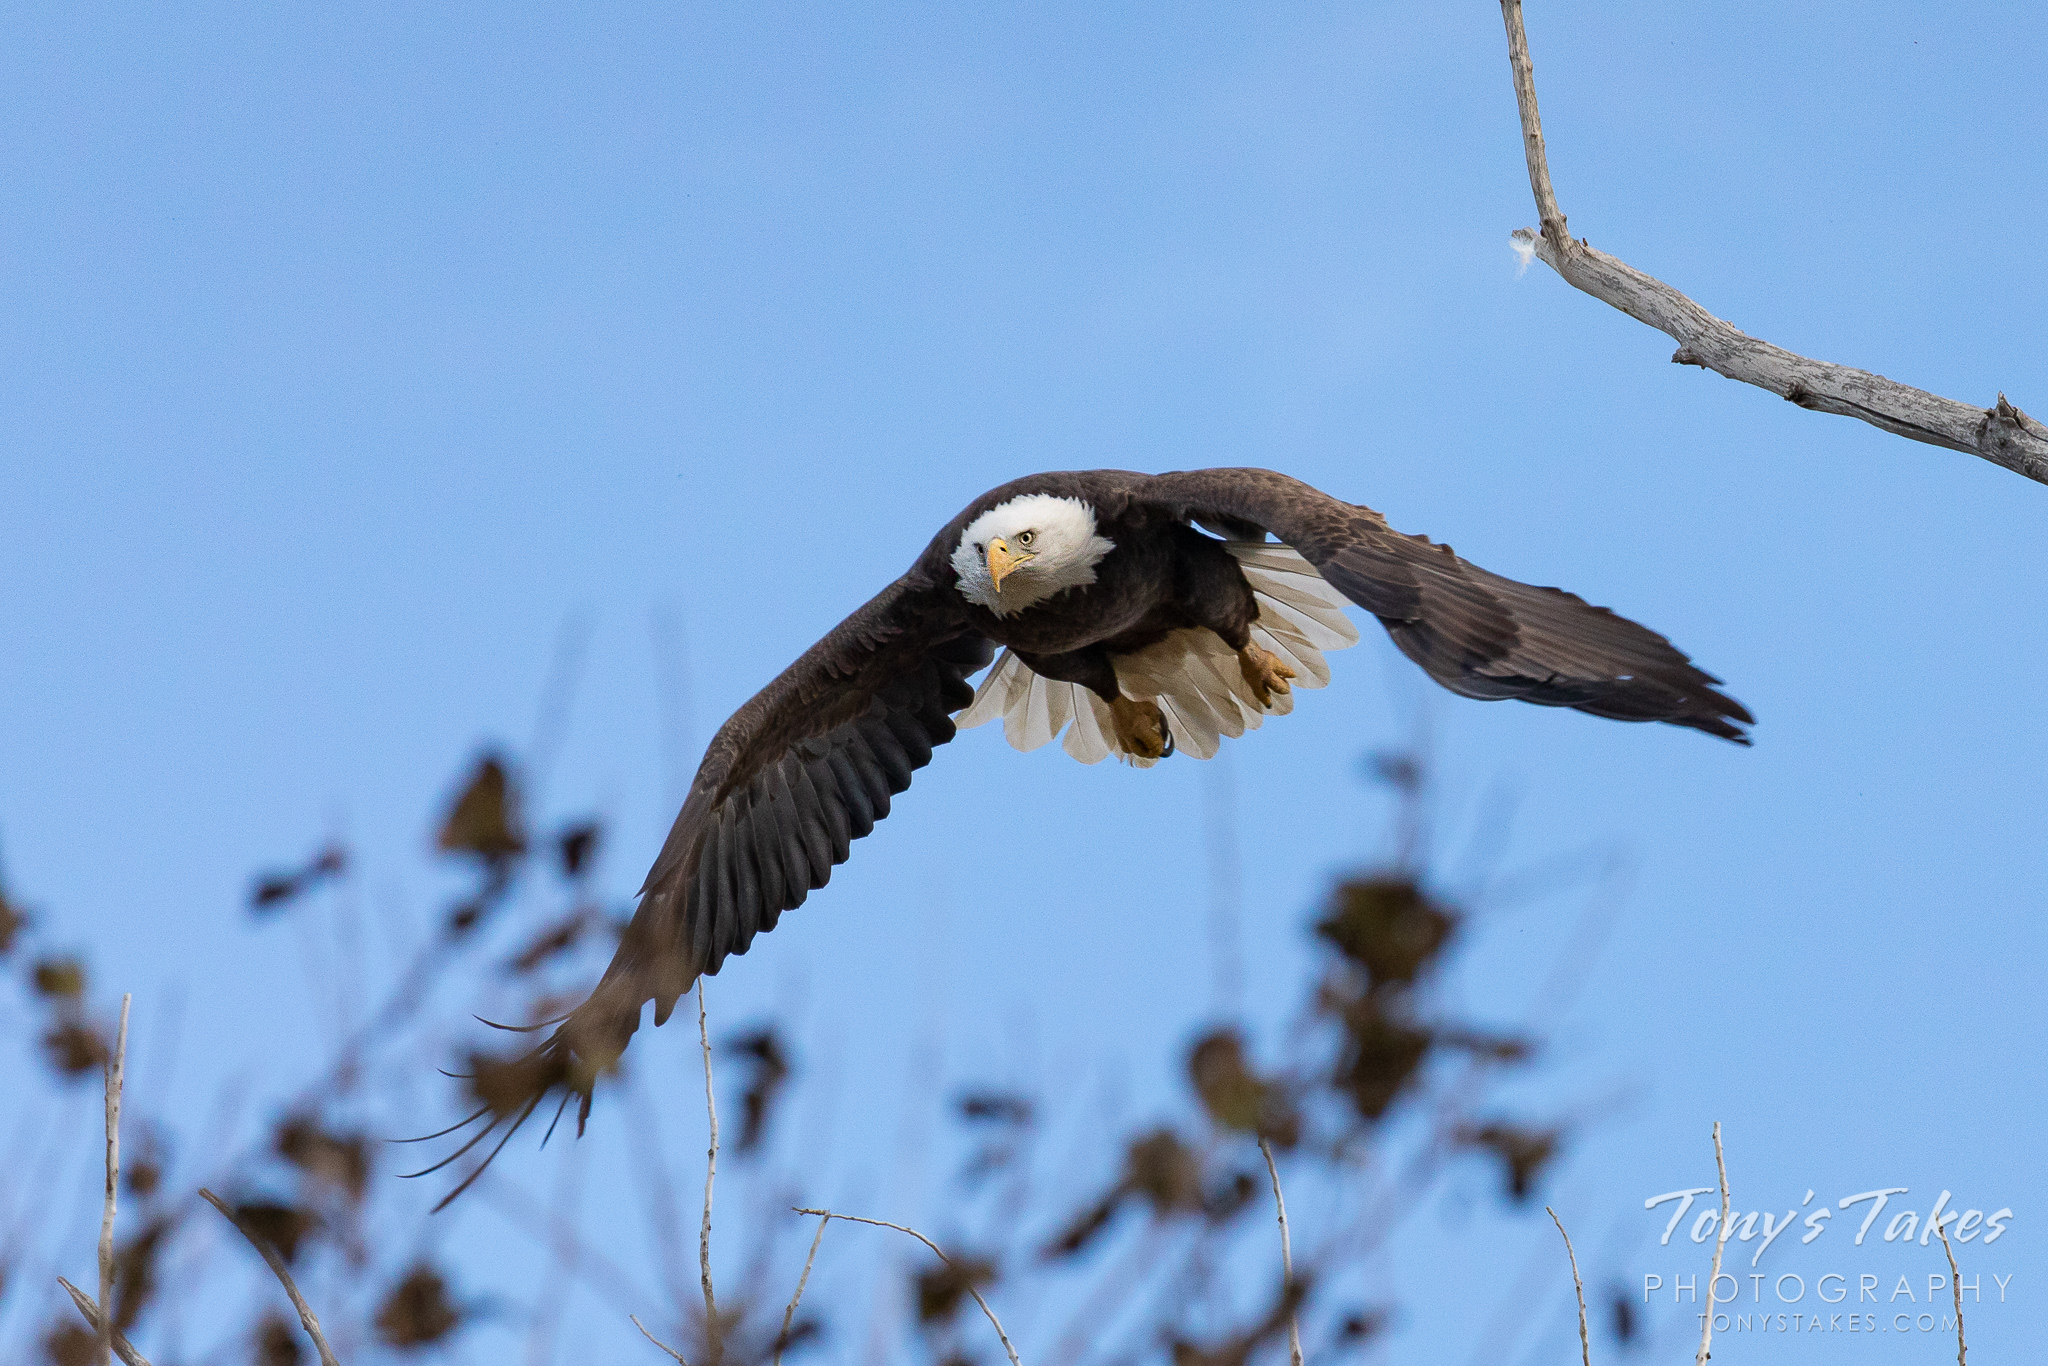 Surprise bald eagle makes for a nice diversion on the way home